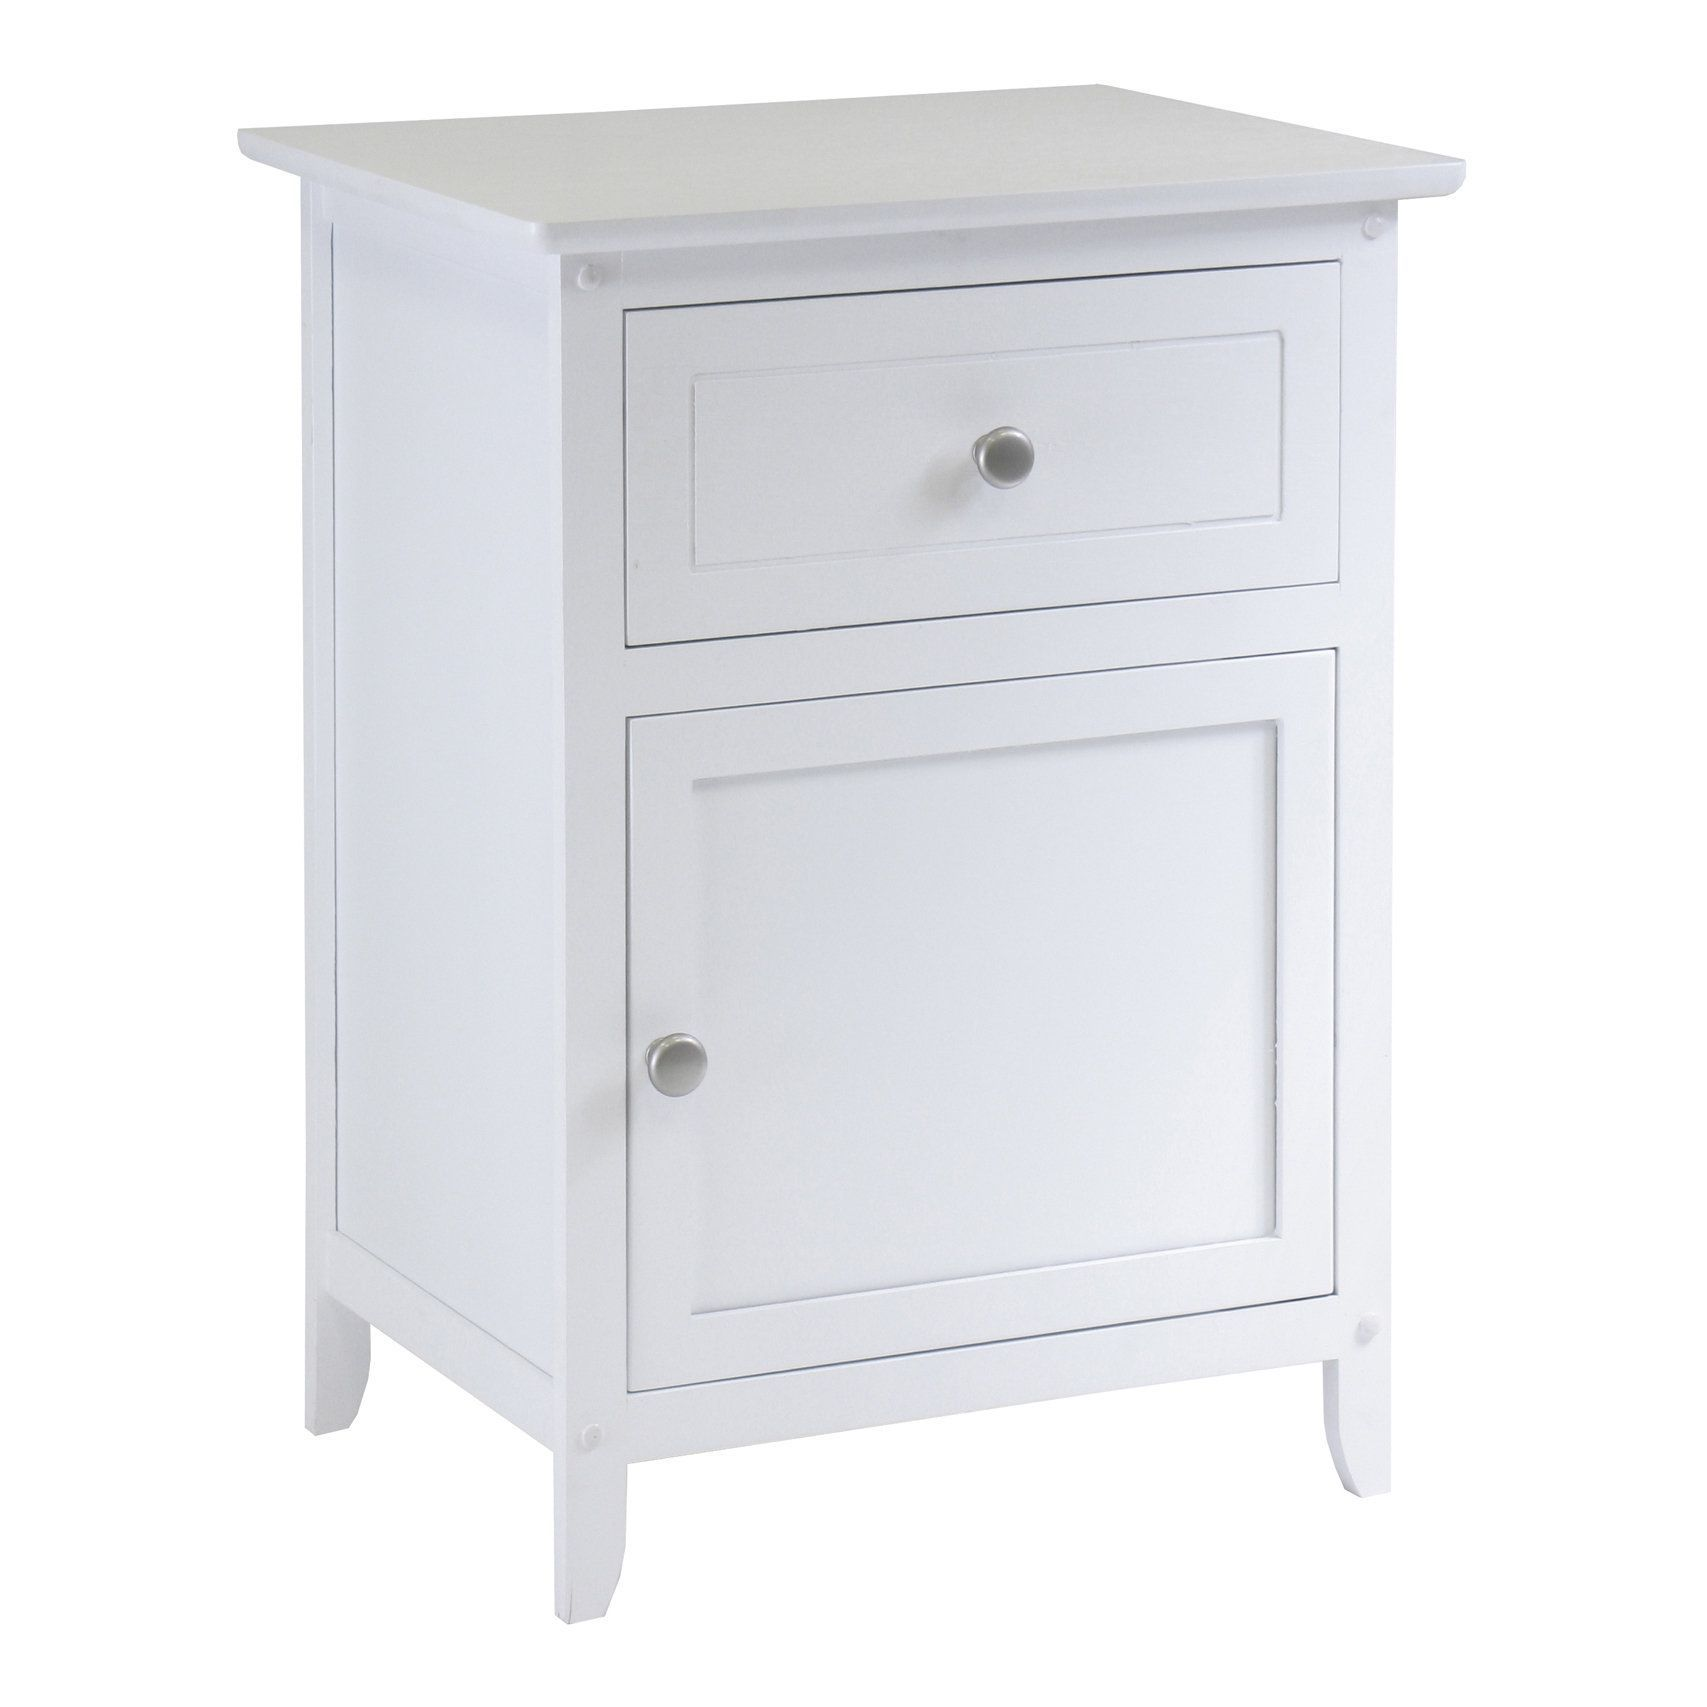 winsome eugene night stand accent table with drawer cabinet wood beechwood end espresso ping bedding furniture electronics jewelry clothing more white linen runner removable legs